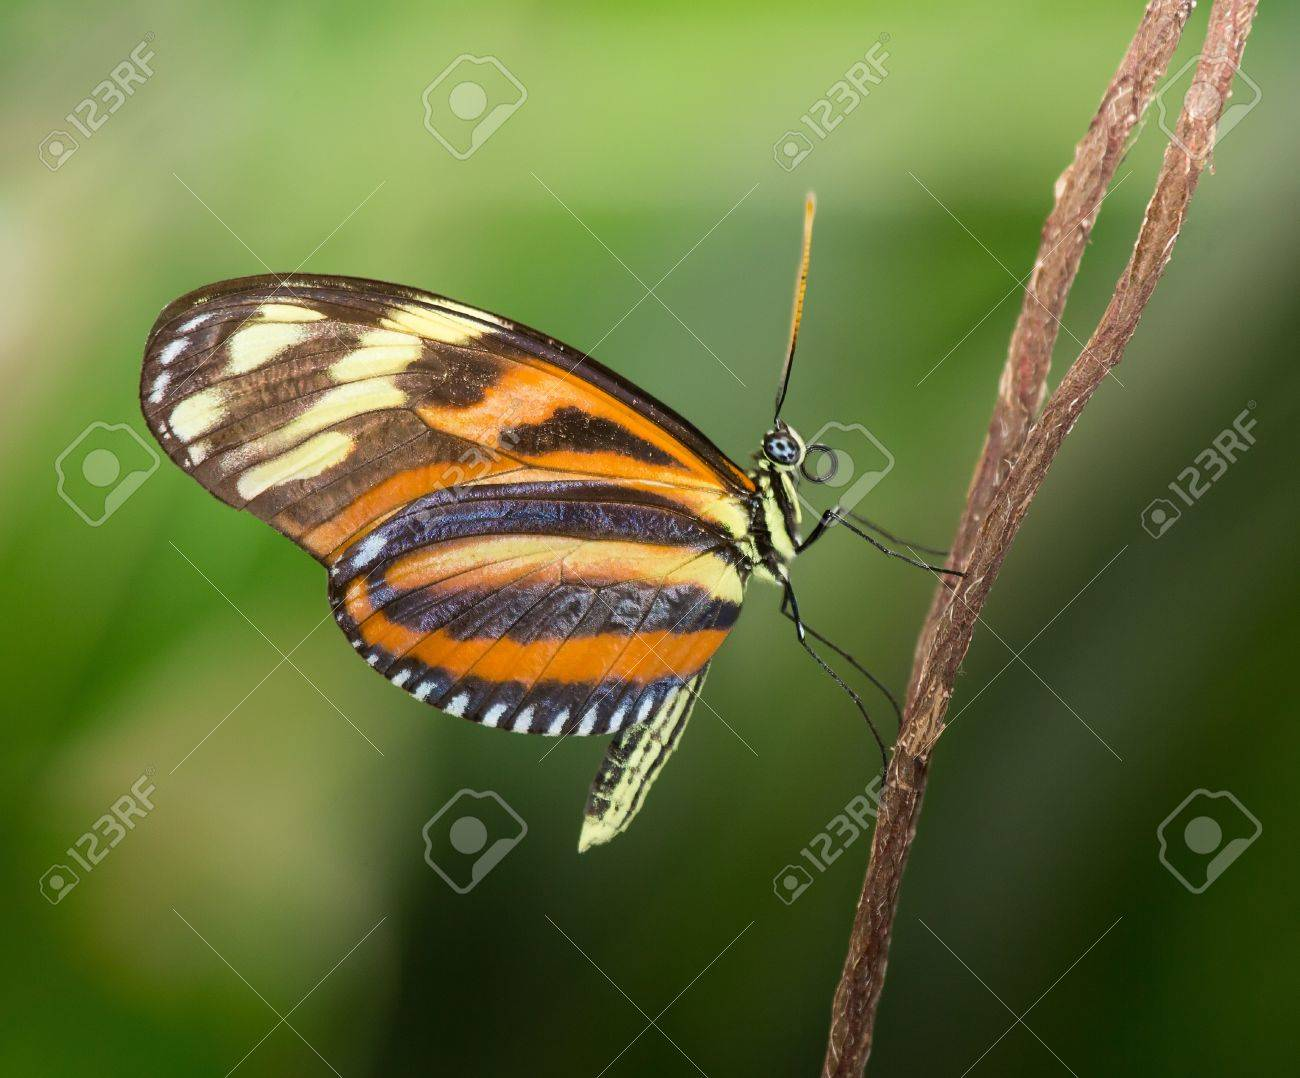 Disturbed Tigerwing butterfly Mechanitis polymnia sitting on a twig Stock Photo - 20632044